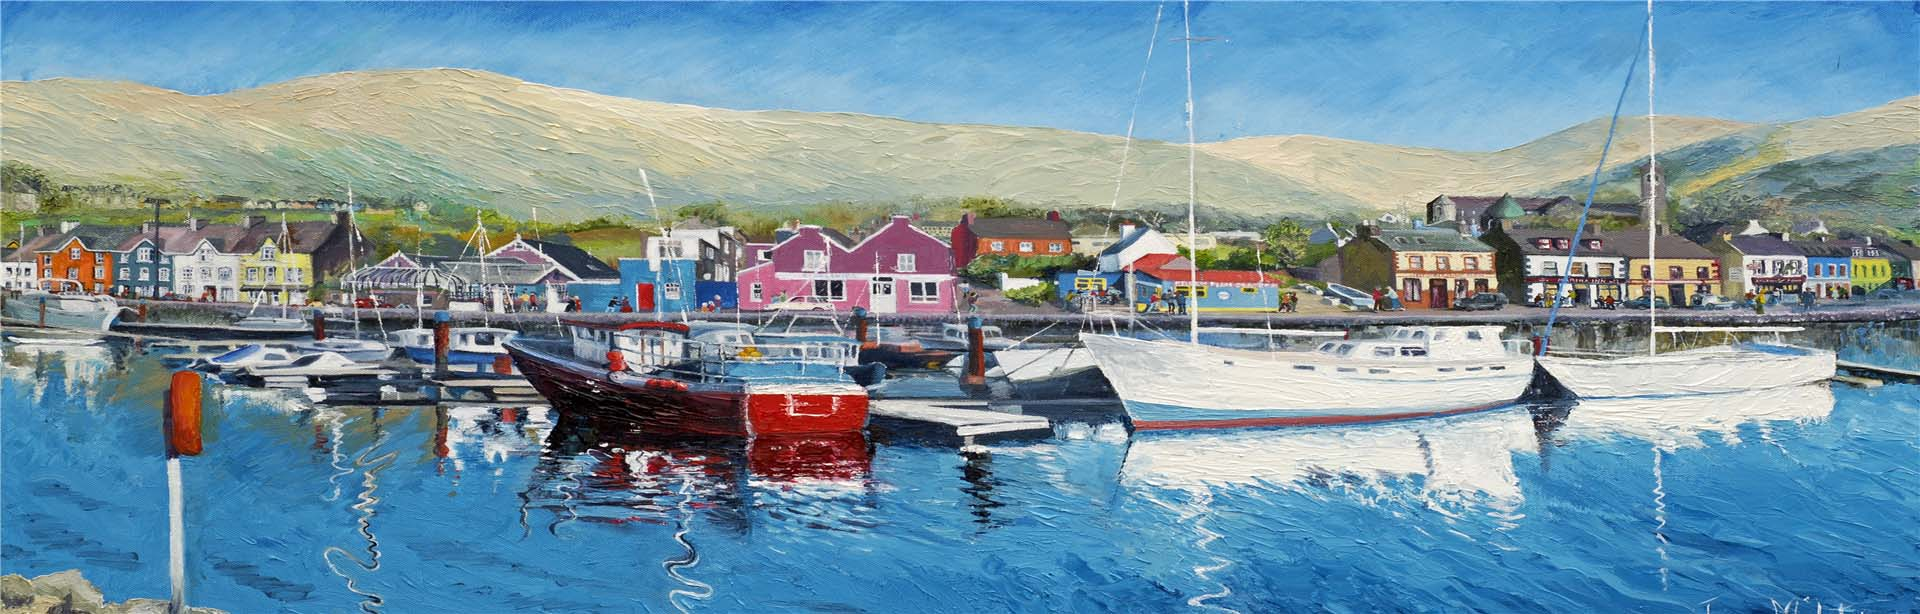 Dingle Marina I